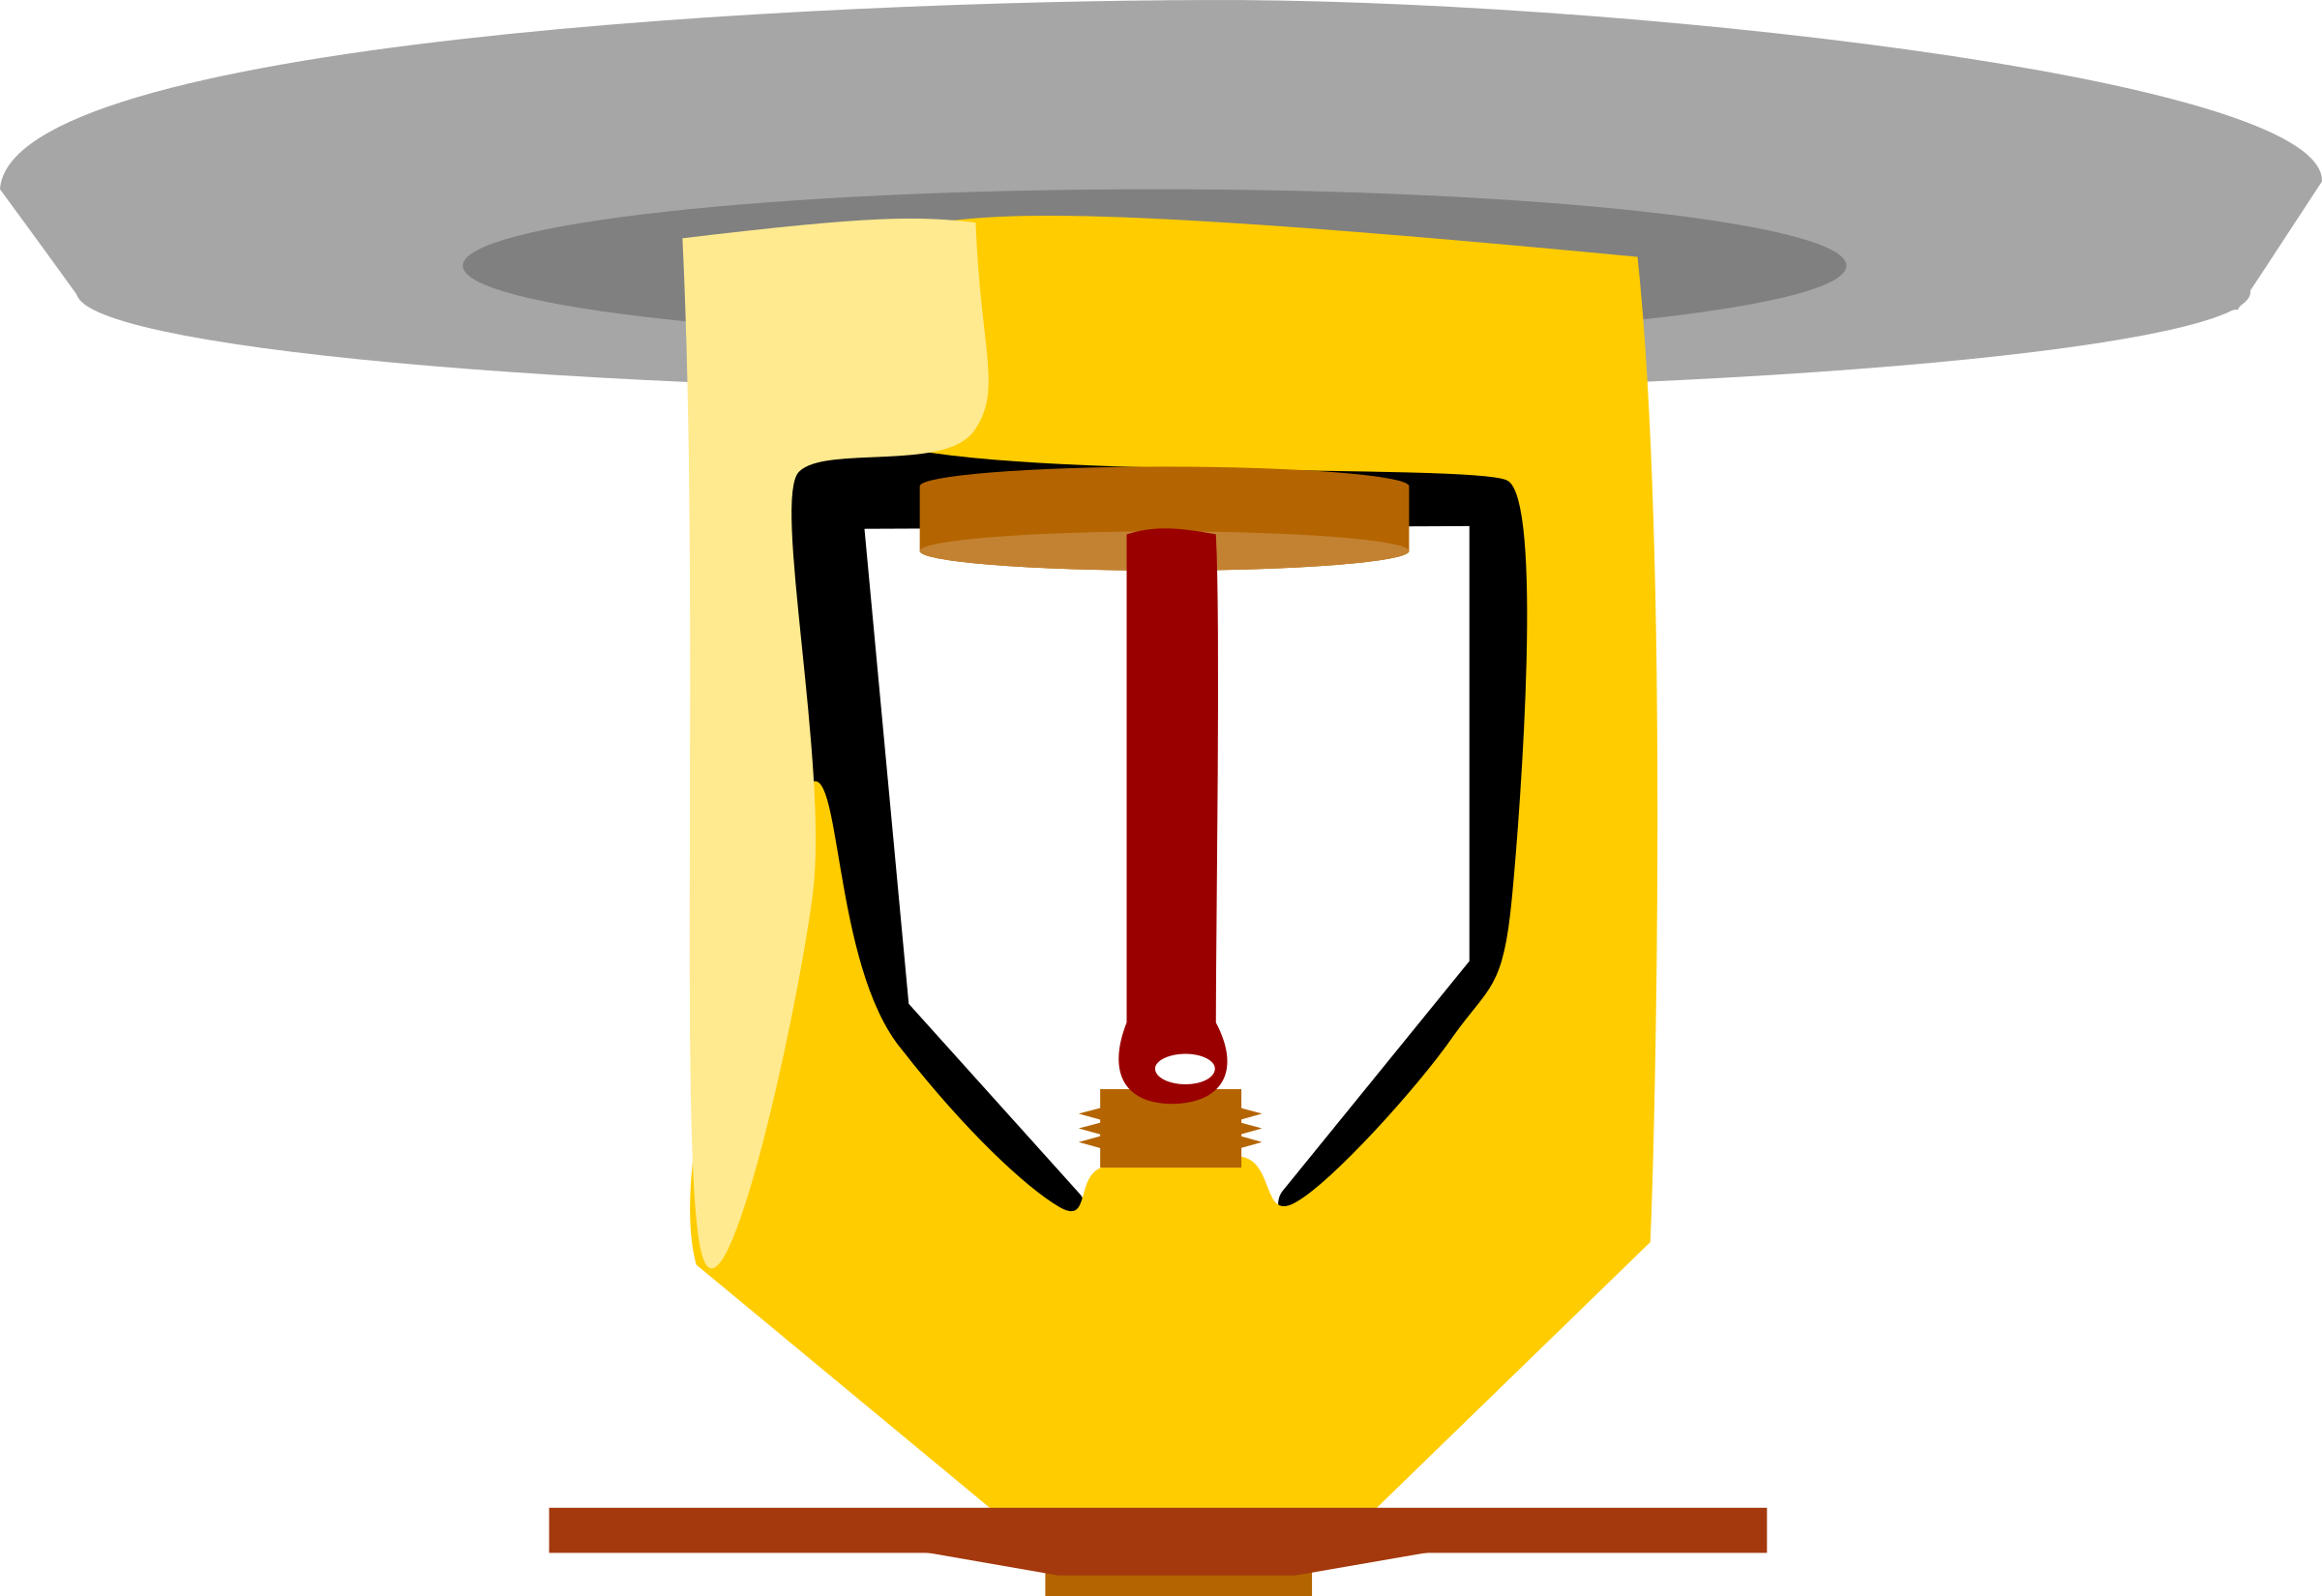 Football clipart fire. Suppression sprinkler with faceplate